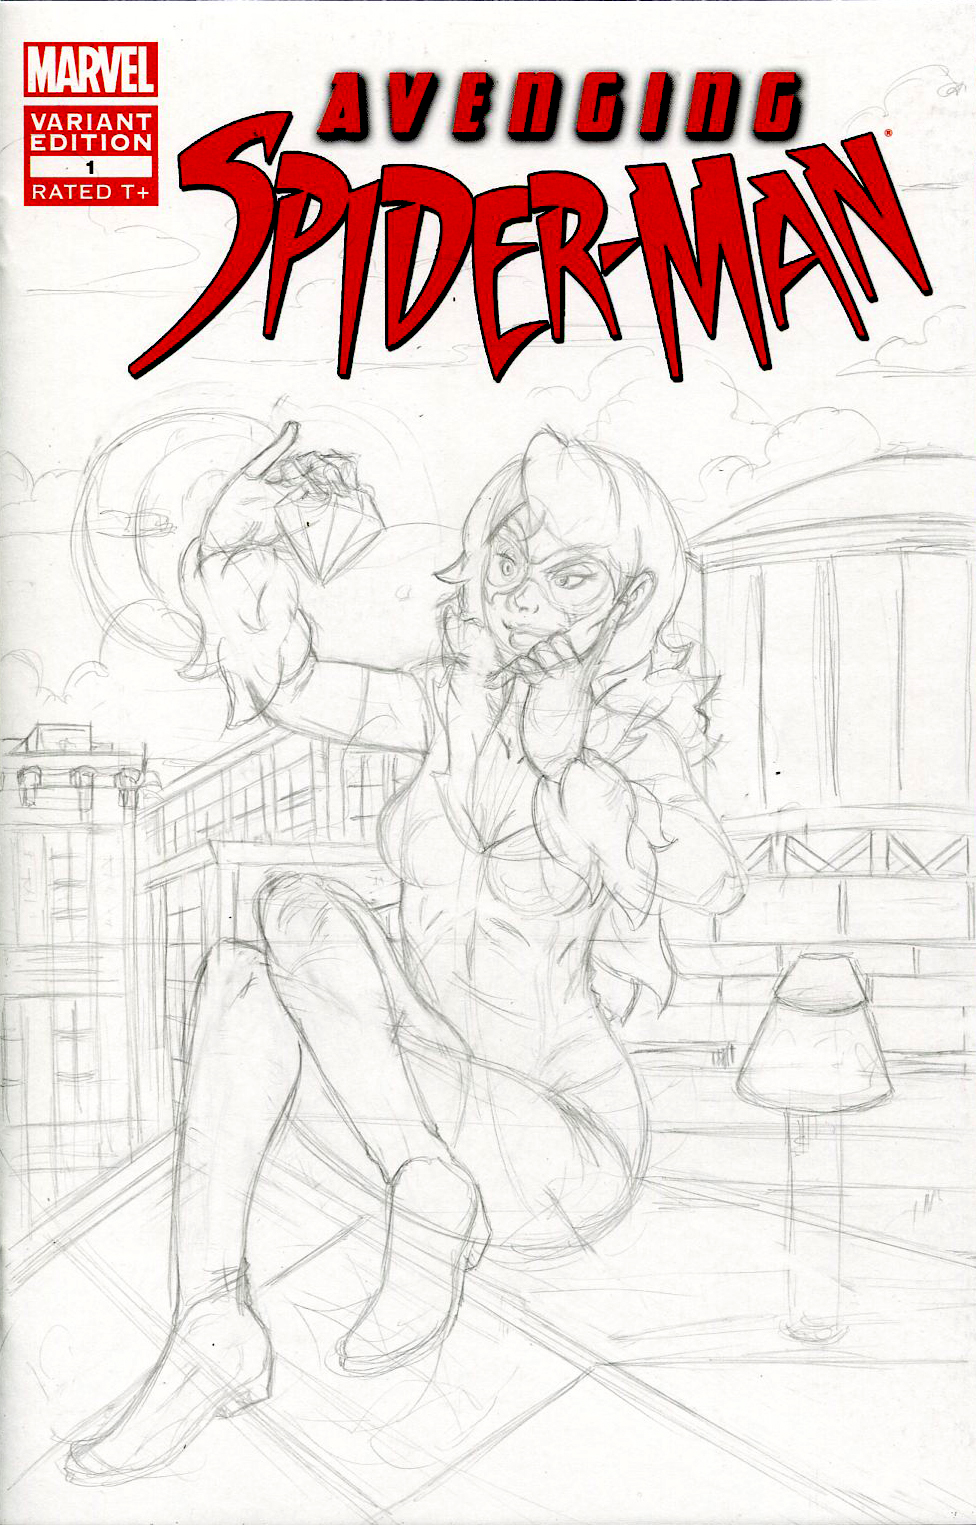 Blackcat Avenging Spider Sketch Cover Rough Pencil by IsaiahBroussard